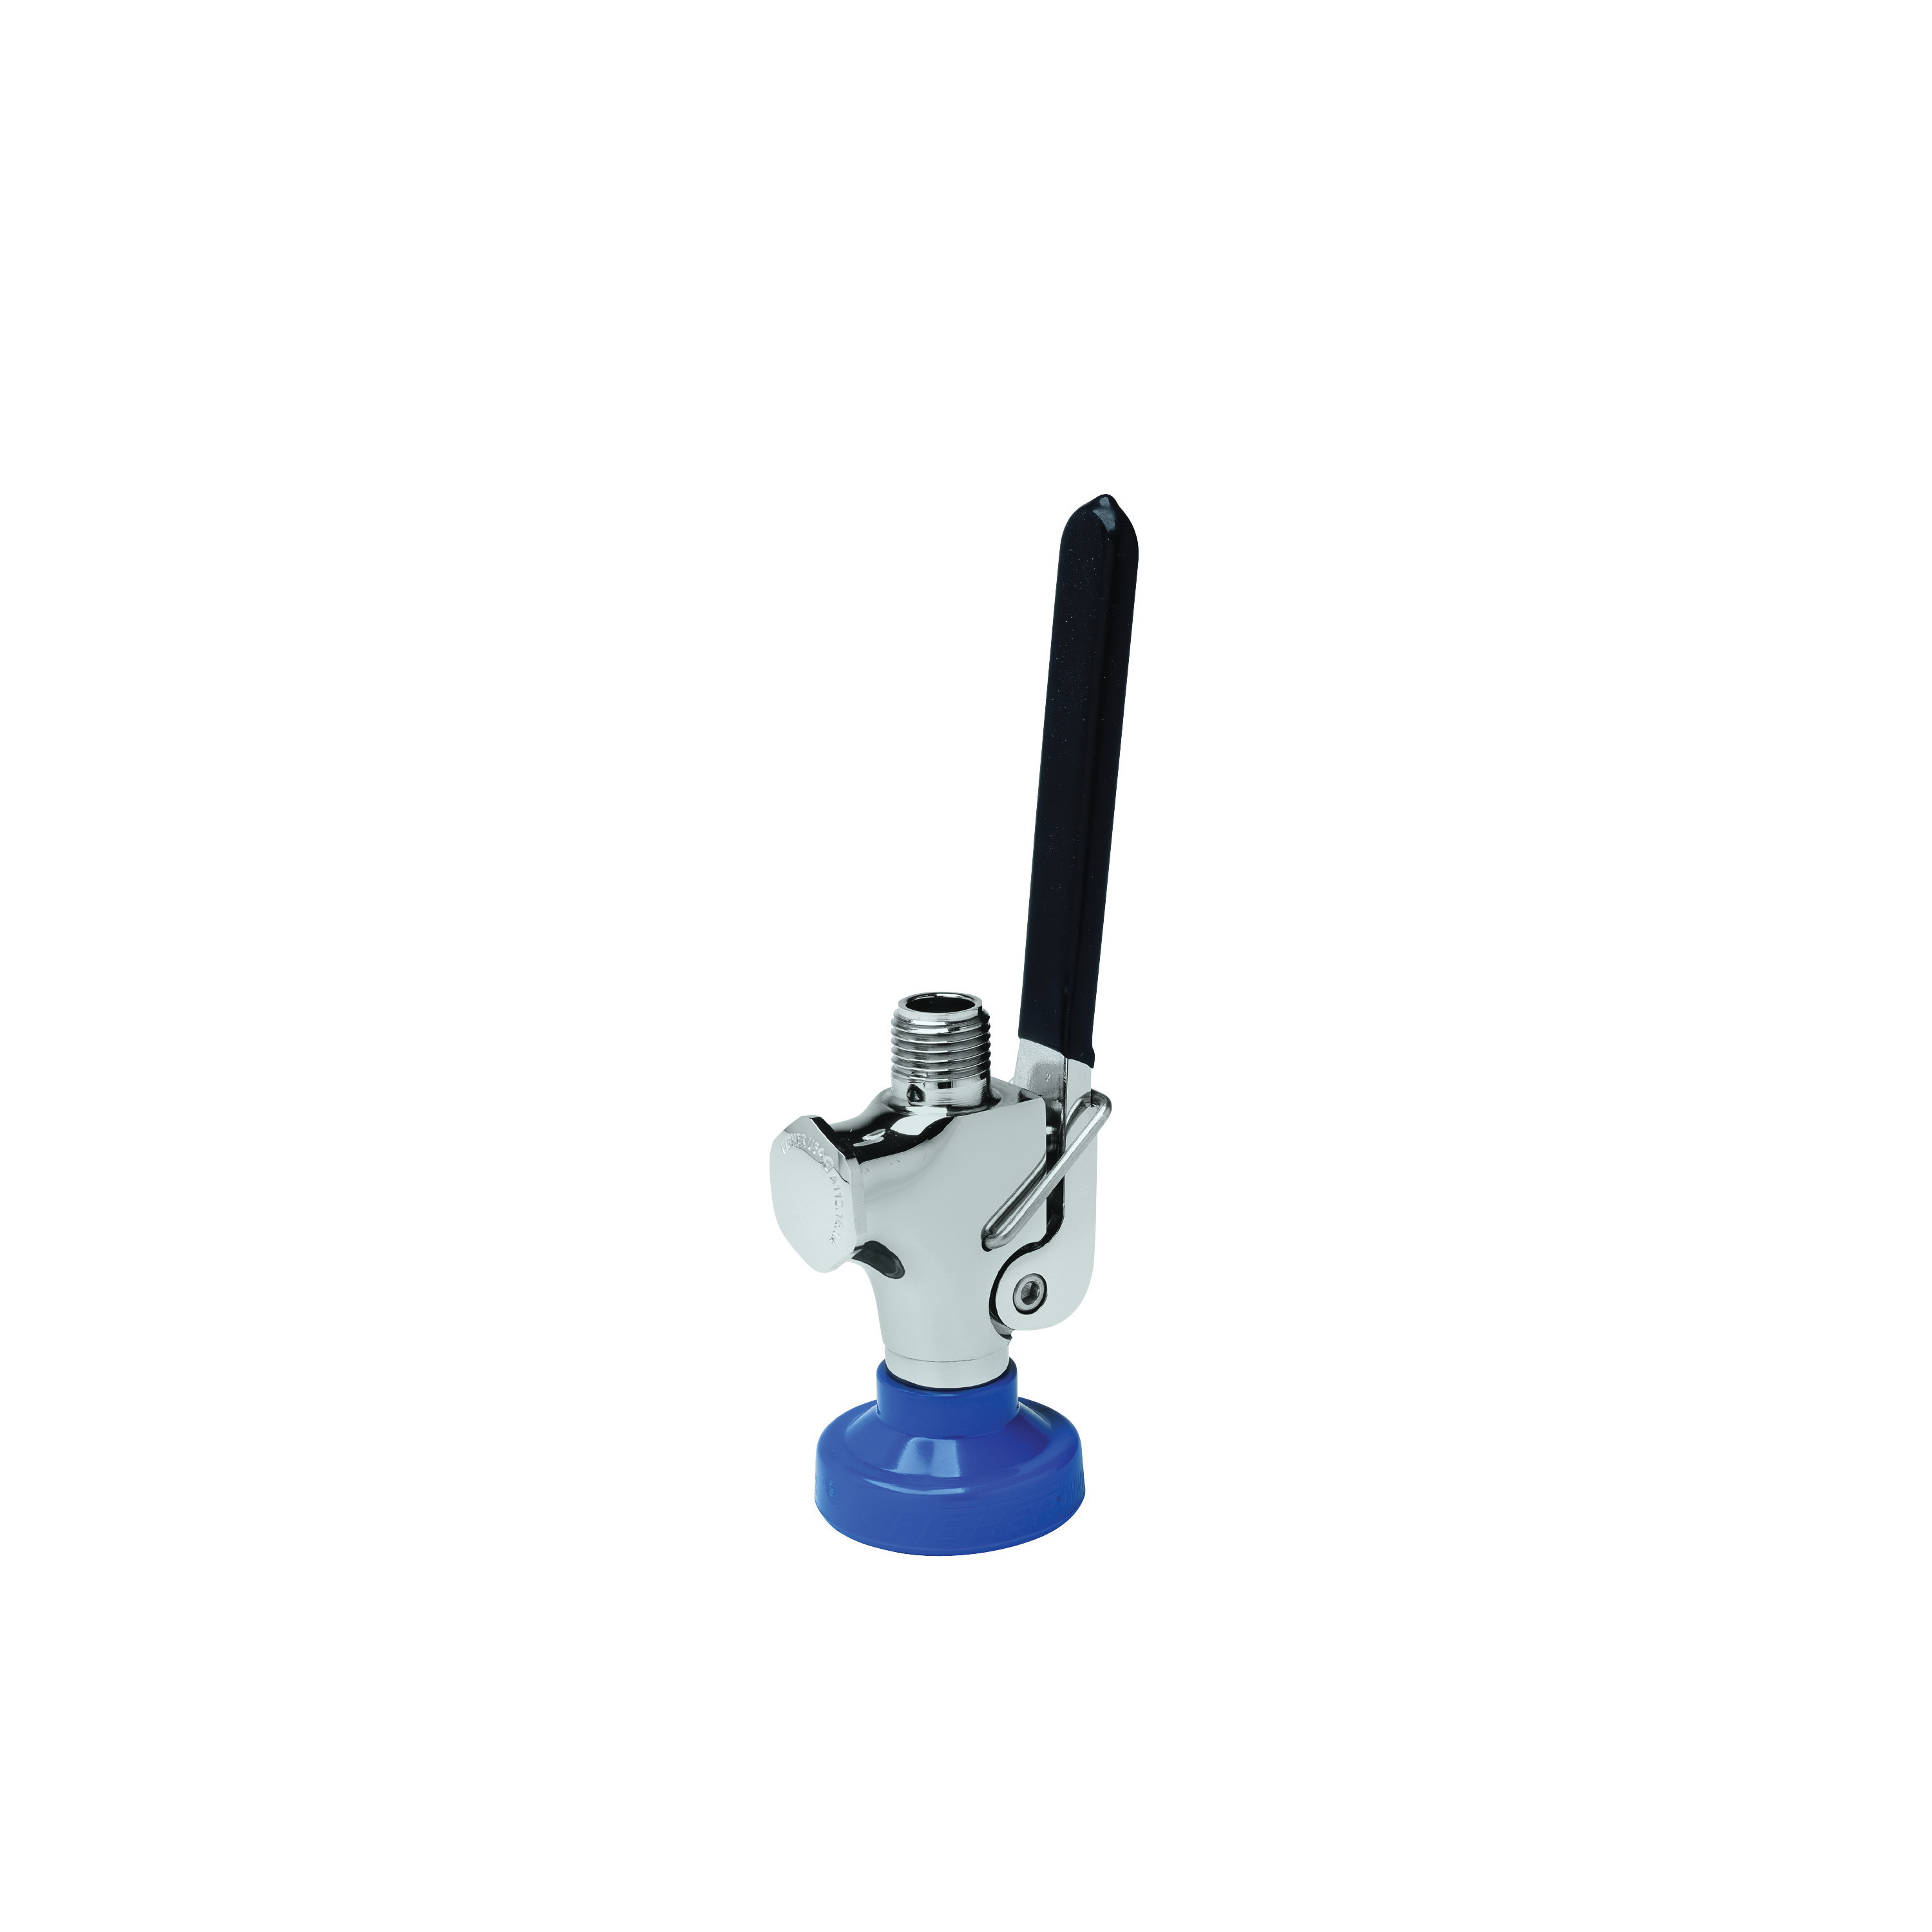 Fisher Ultra™ Spray 71307 Spray Valve, 3/4-14 UNS Nominal, 60 psi Pressure, Stainless Steel Body, Long Squeeze Lever Handle Actuator, Commercial